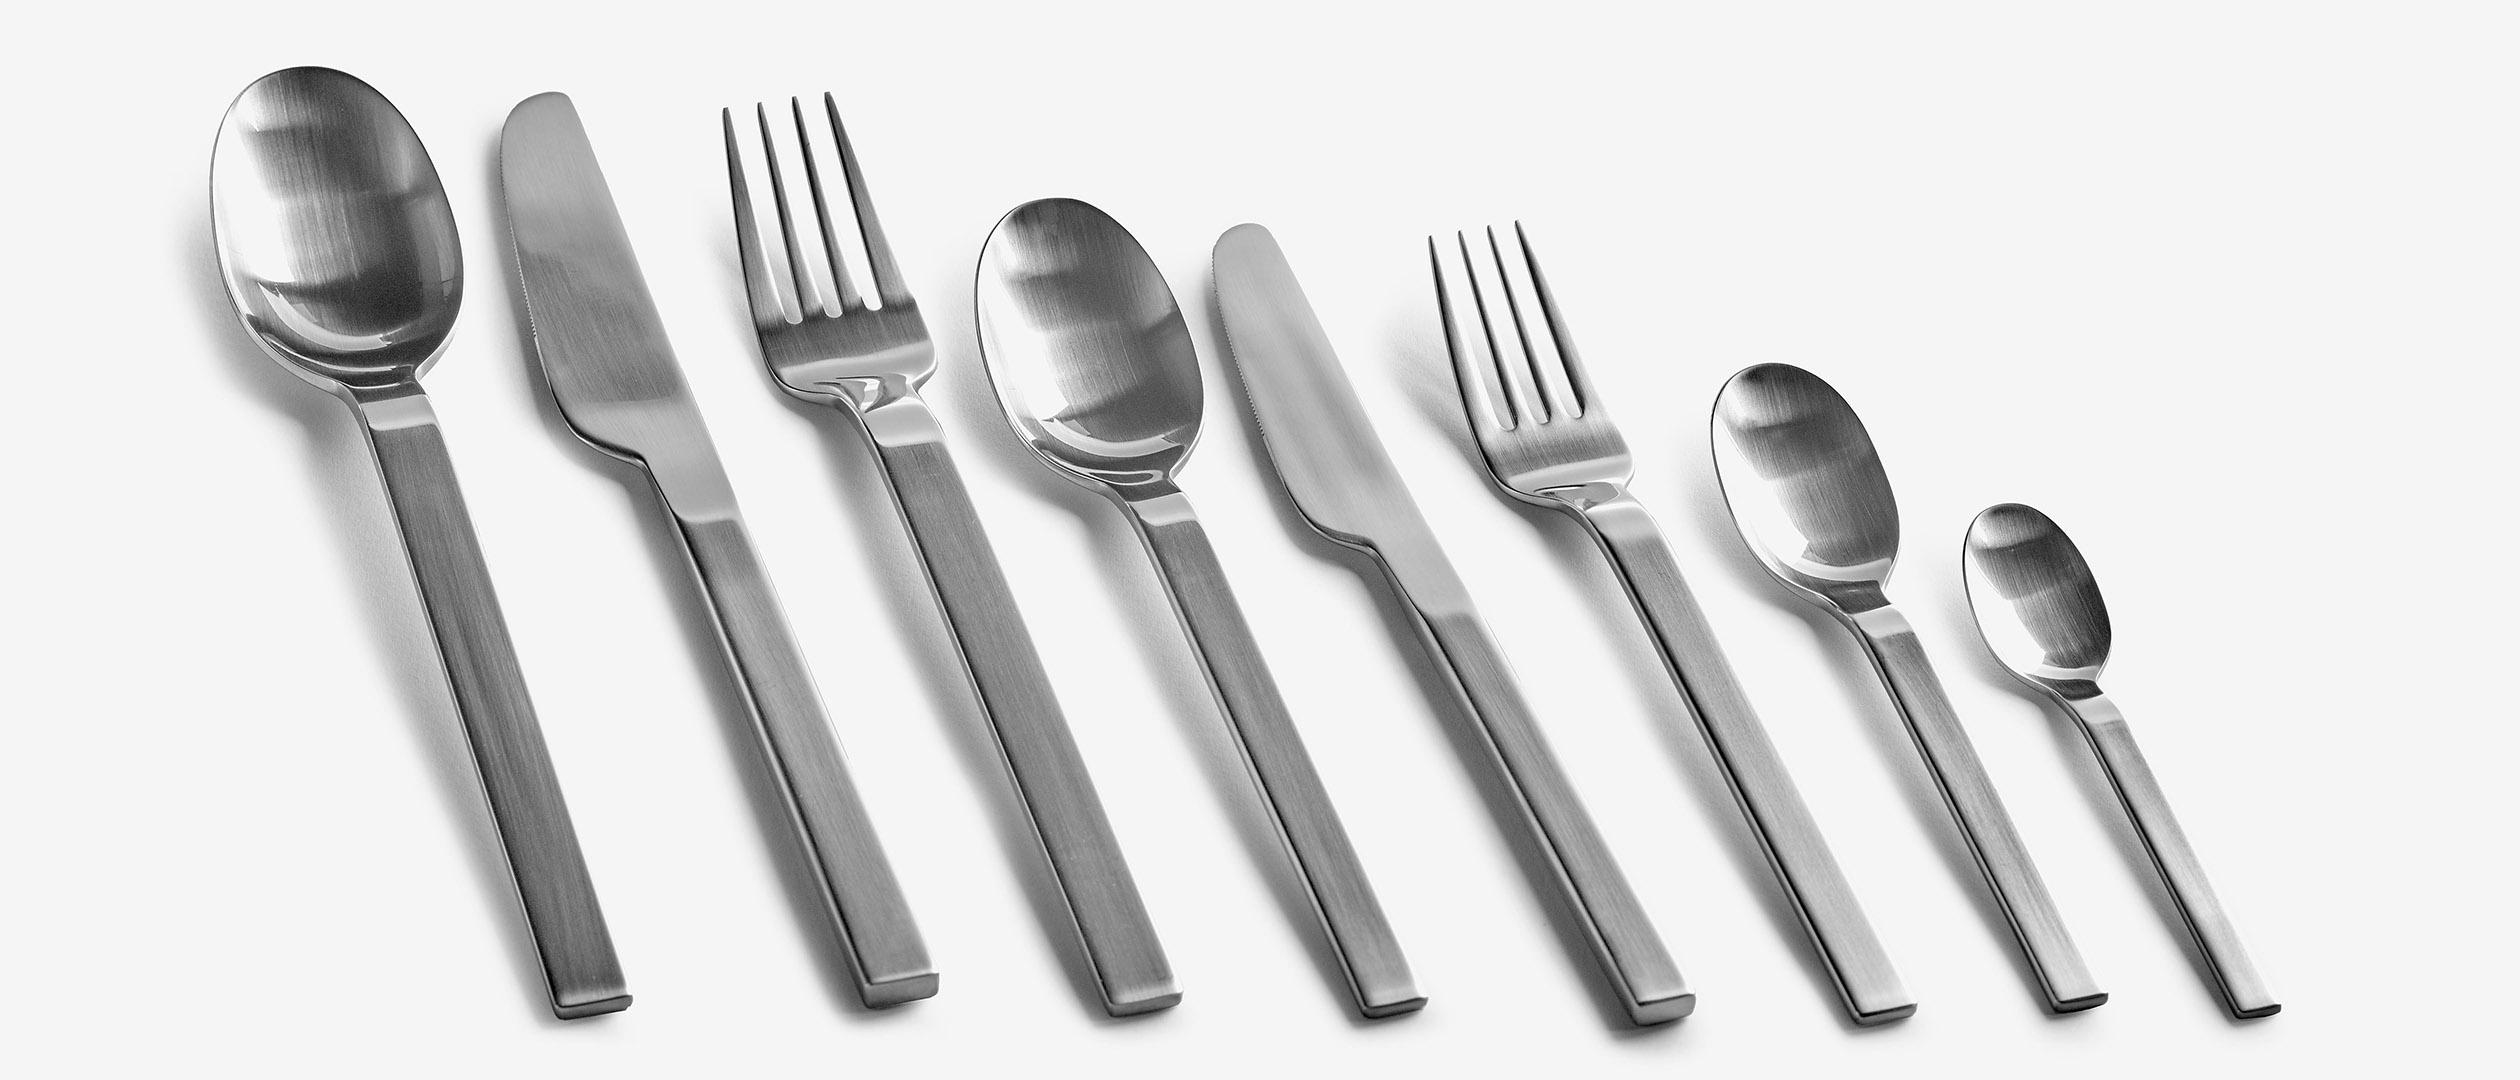 Product design serax cutlery